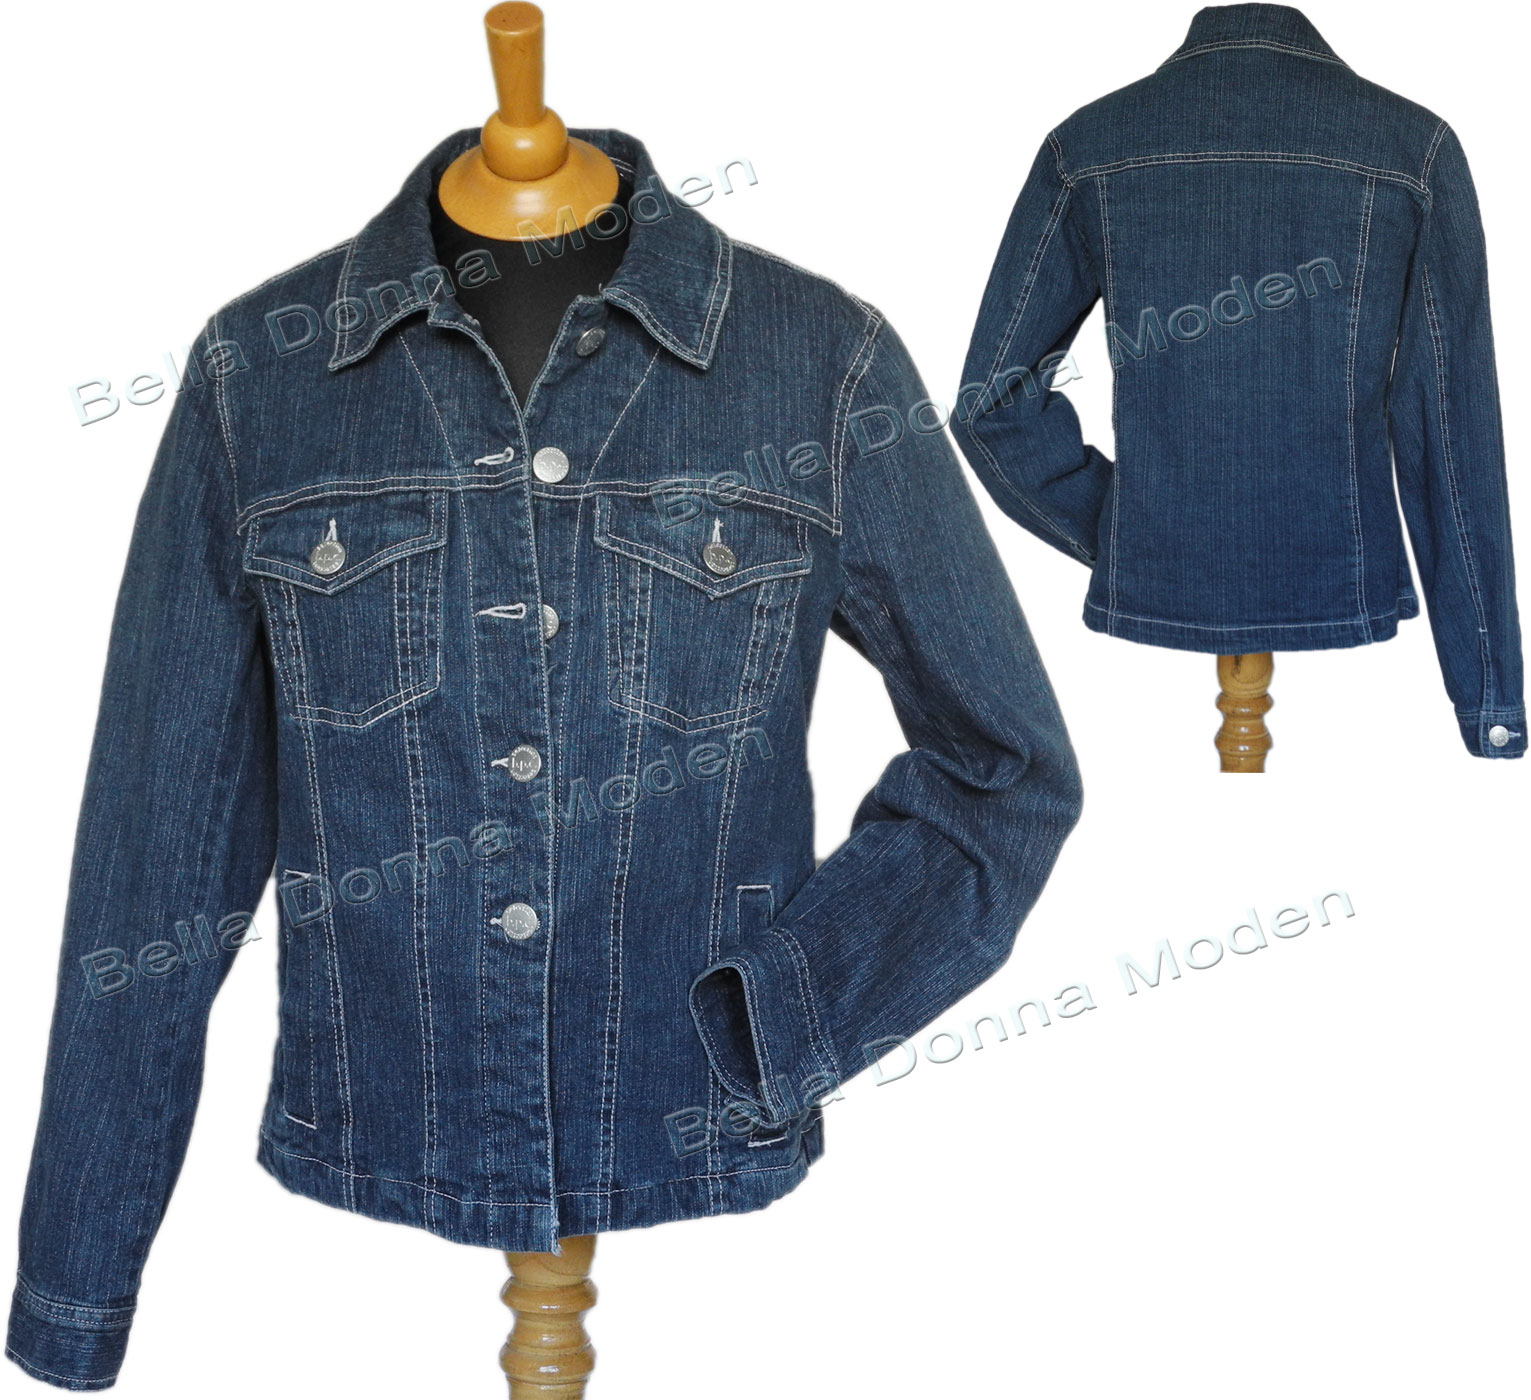 damen jeansjacke stretch jacke blue denim ebay. Black Bedroom Furniture Sets. Home Design Ideas